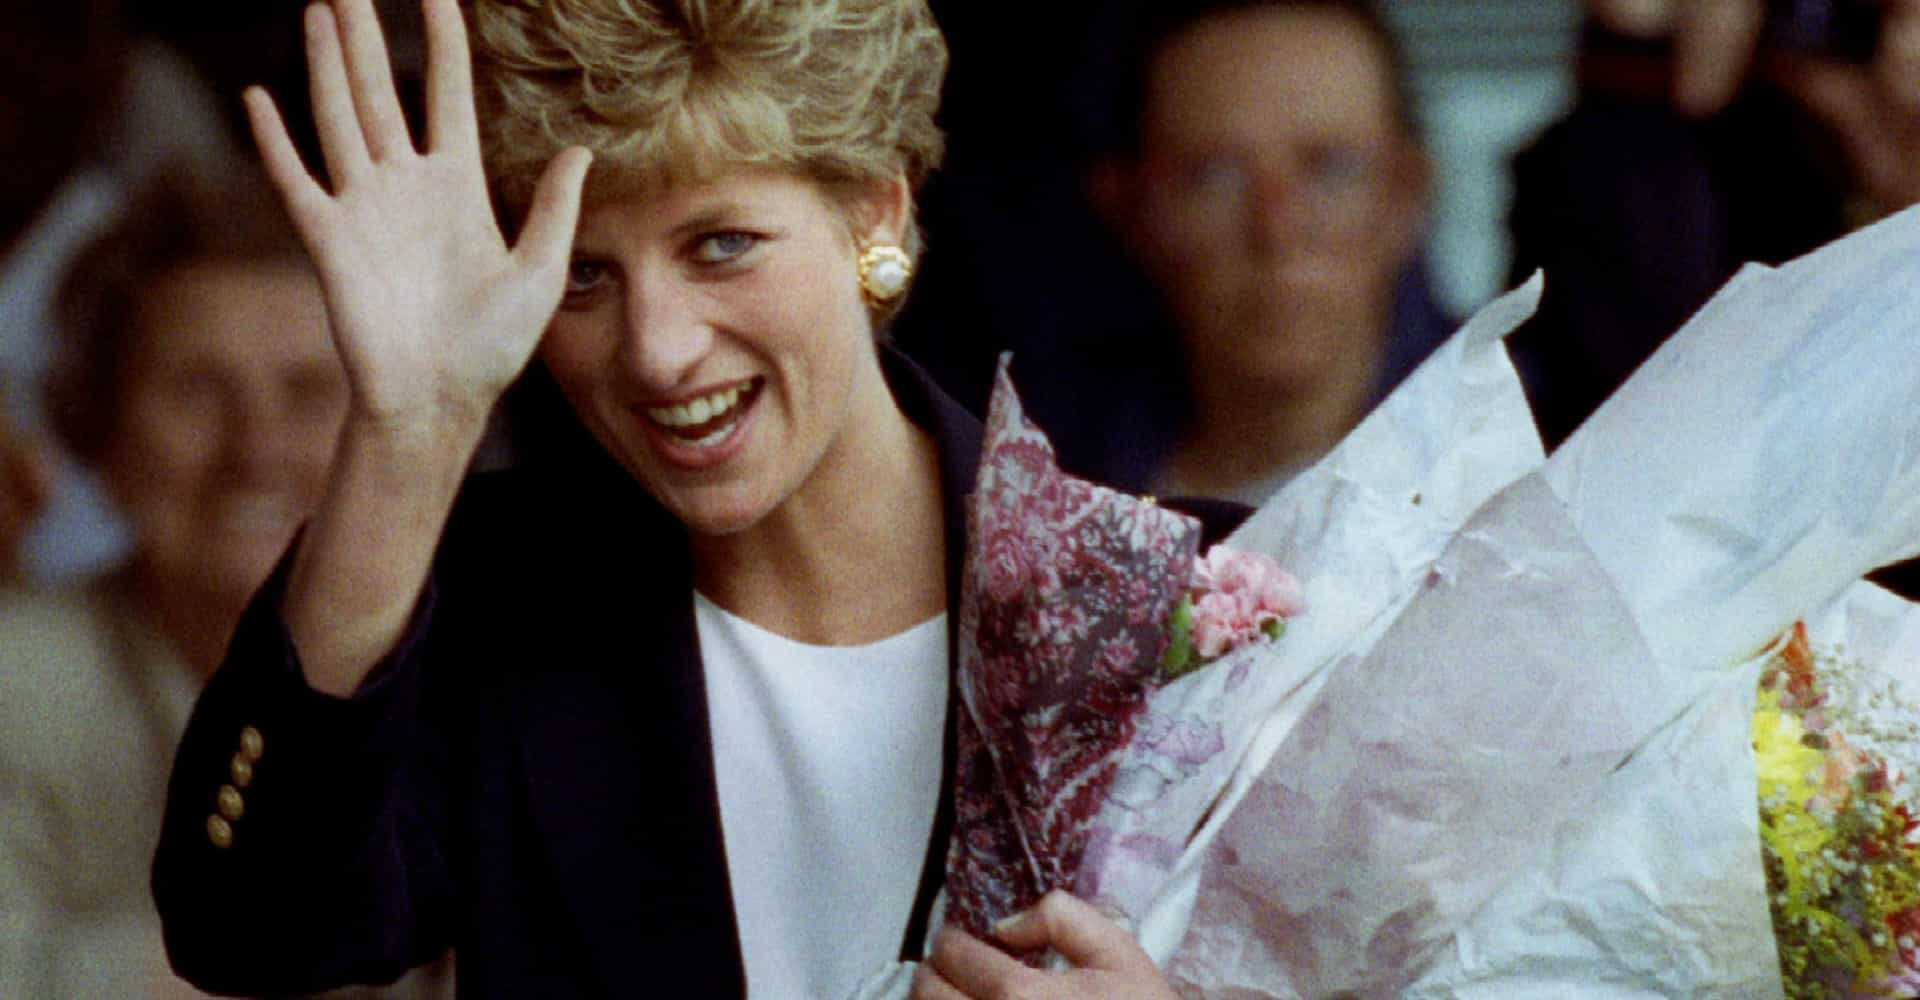 Remembering Princess Diana: 20 years on